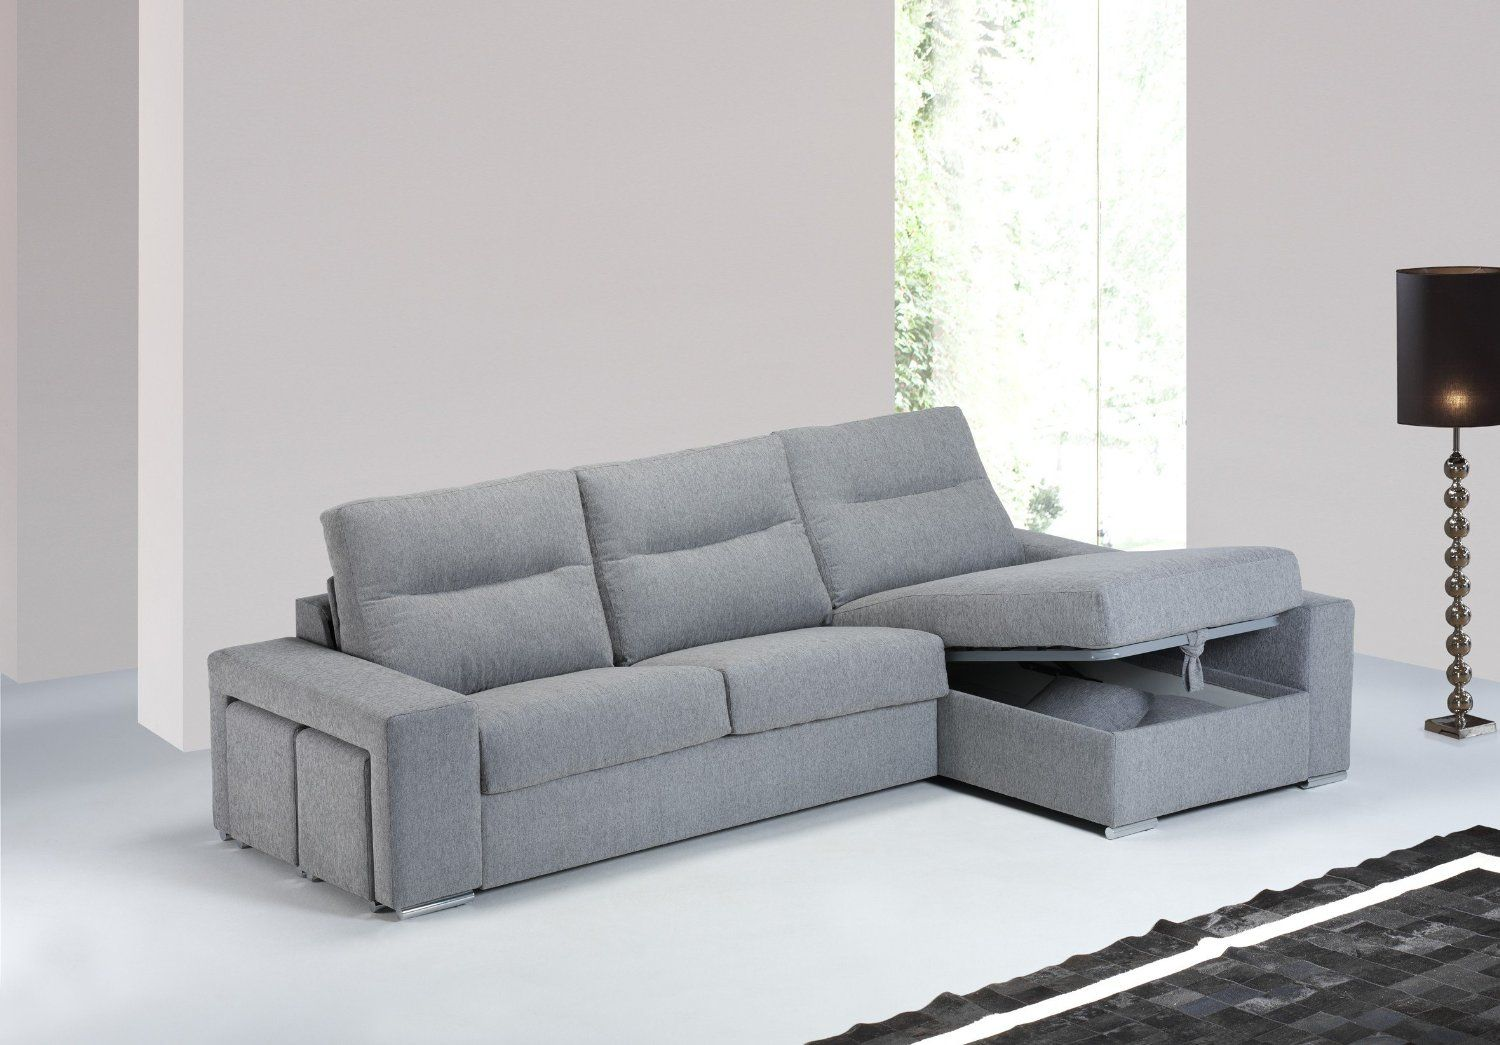 Canap convertible d 39 angle conde couchage quotidien 140 - Canape d angle convertible couchage quotidien ...